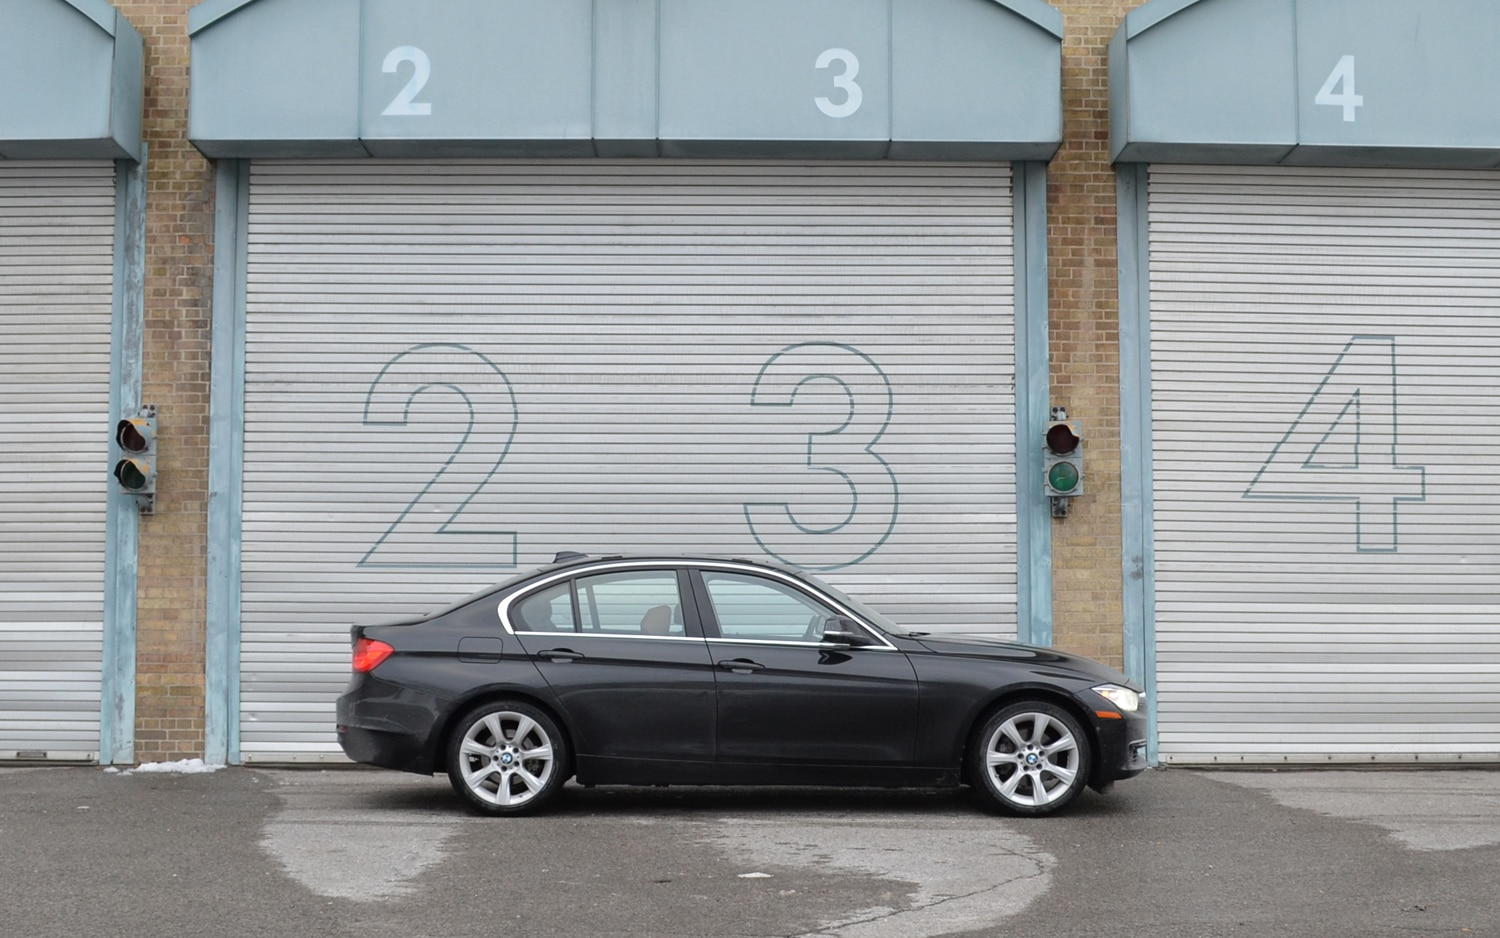 2012 BMW 328i - Four Seasons Update - December 2012 - Automobile